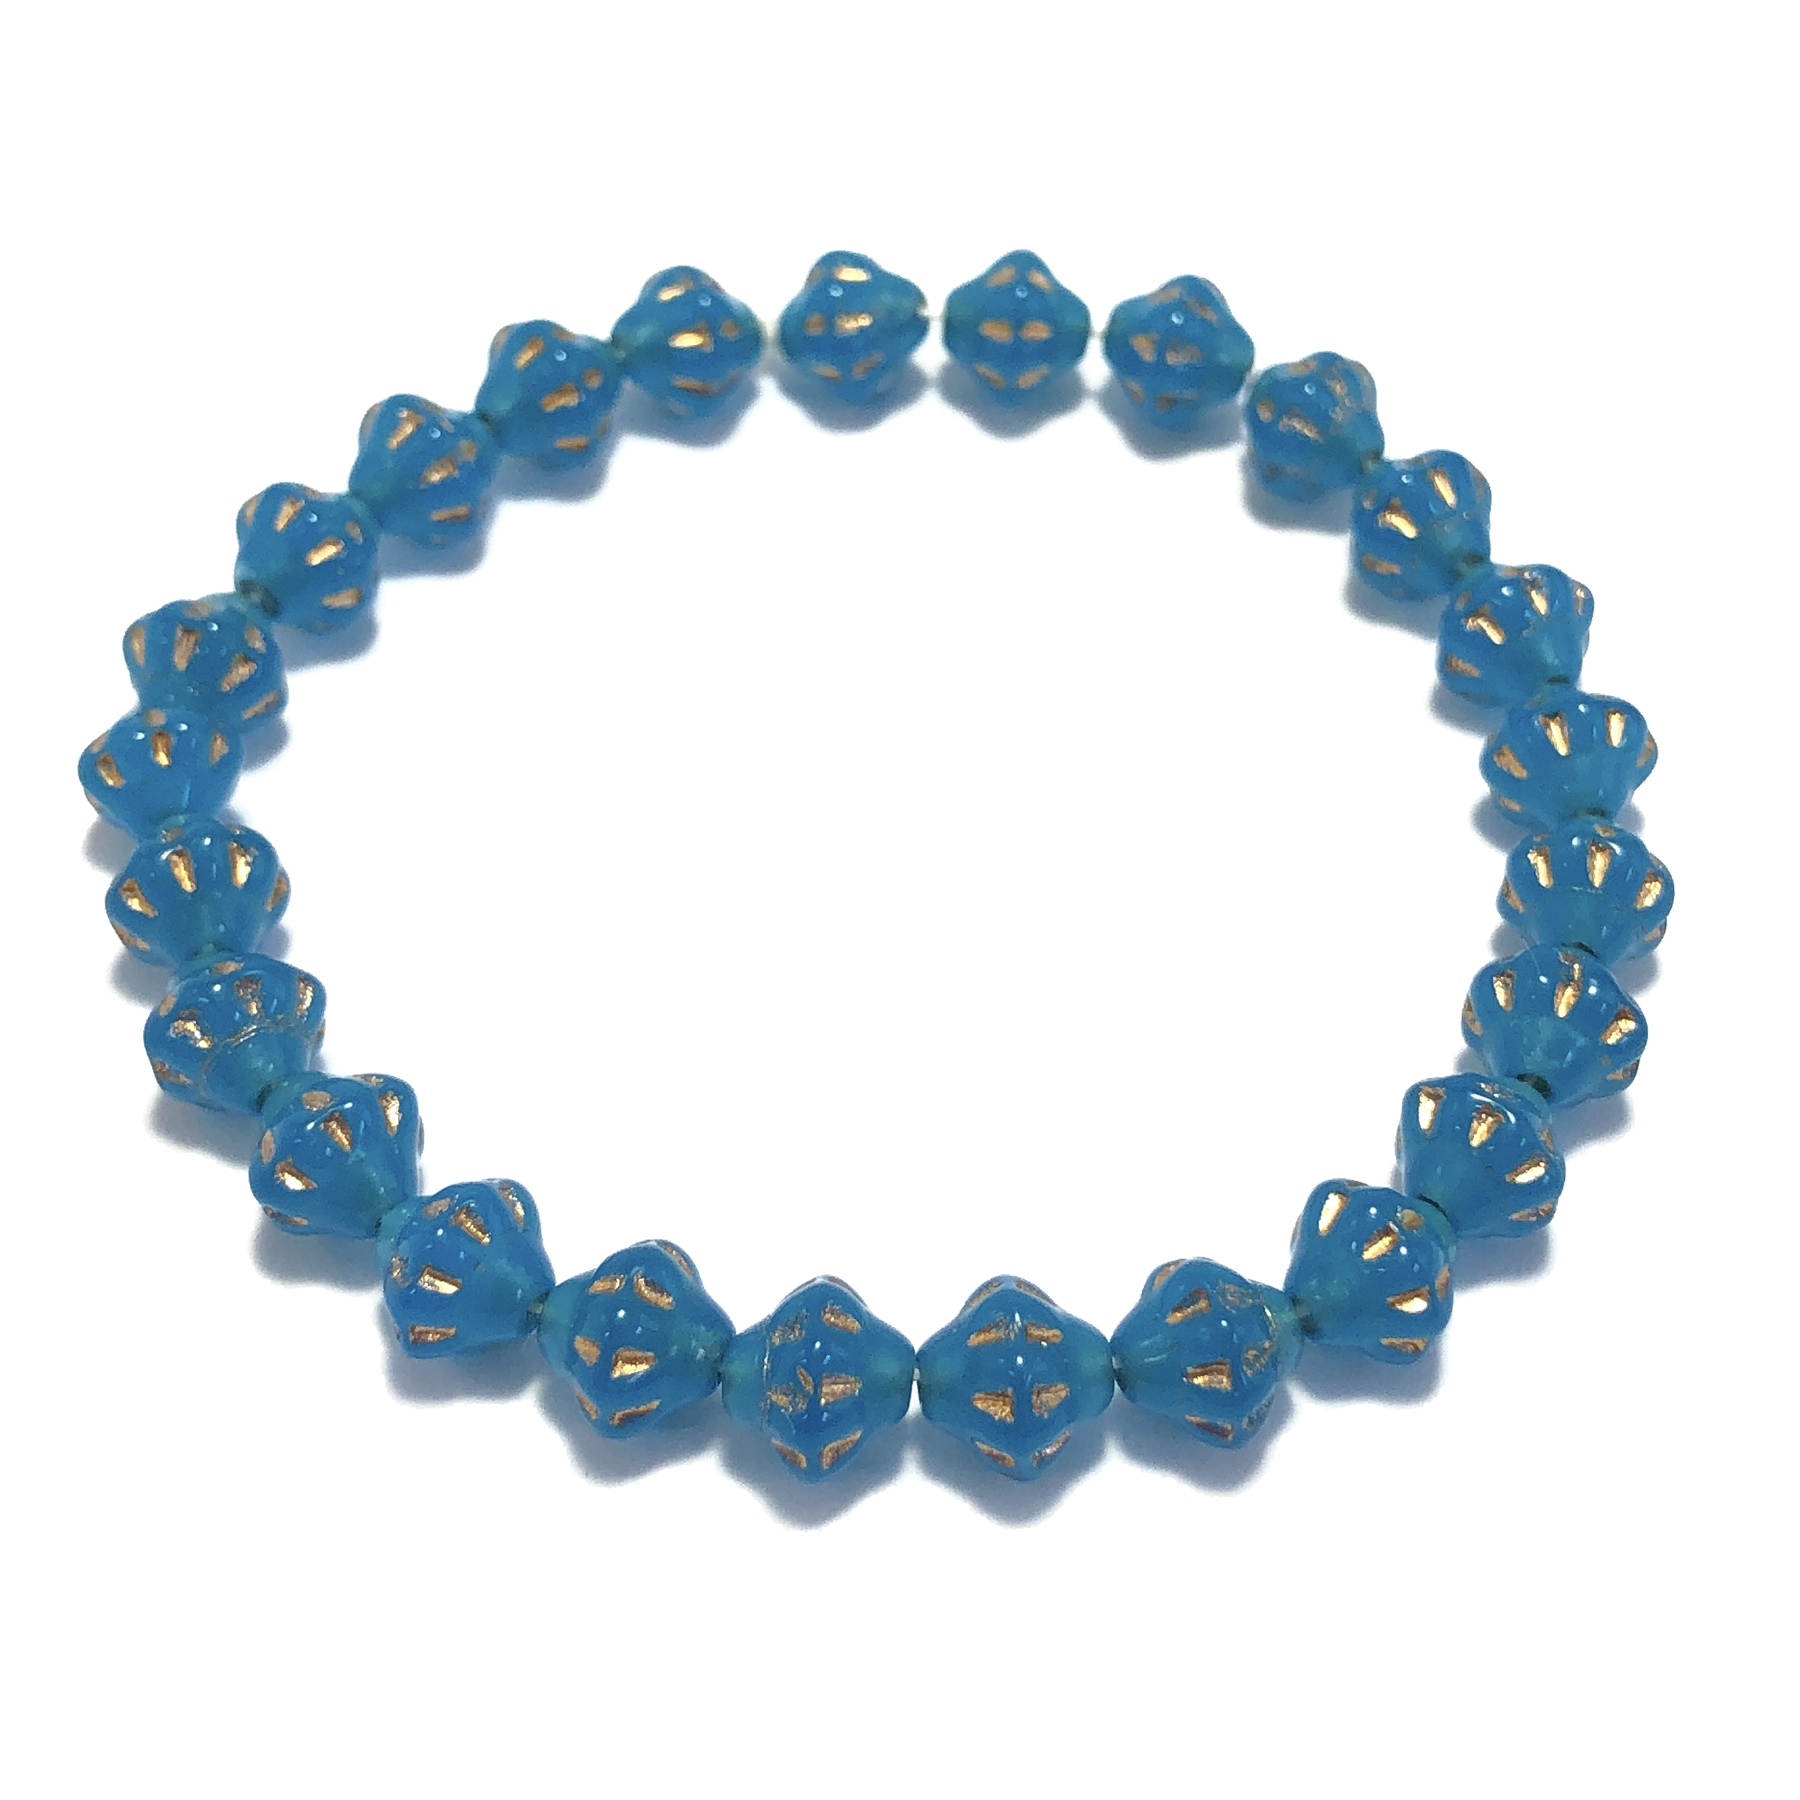 Glass Saturn beads, glass beads, blue aqua, Czech glass beads, saucer beads, Czech glass, opaque beads, US made, B'sue Boutiques, jewelry making, beading supplies, jewelry making supplies, 6mm beads, bsueboutiques, accent beads, 0520